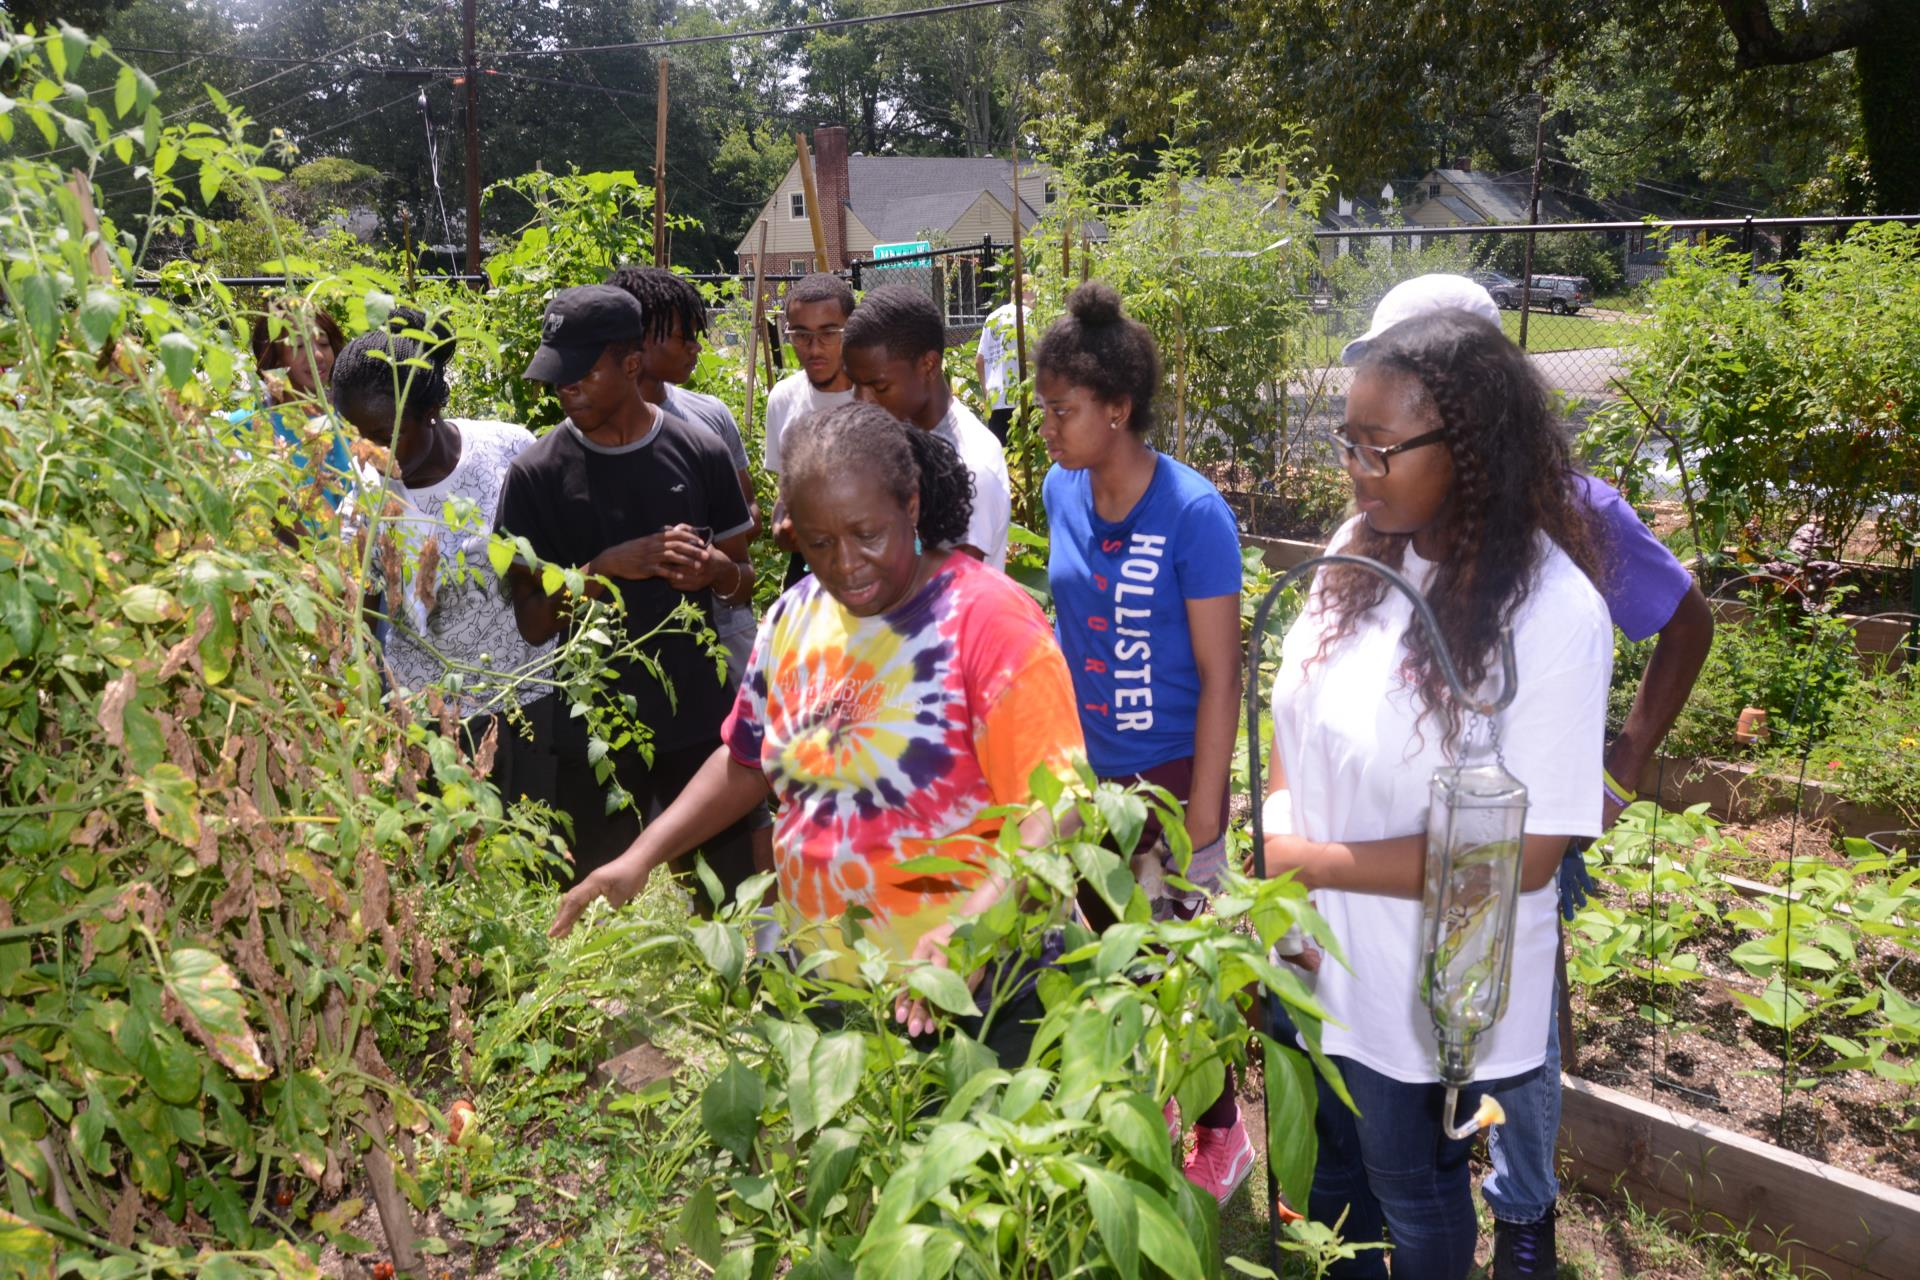 Councilmember Sheperd  explains gardening to youth